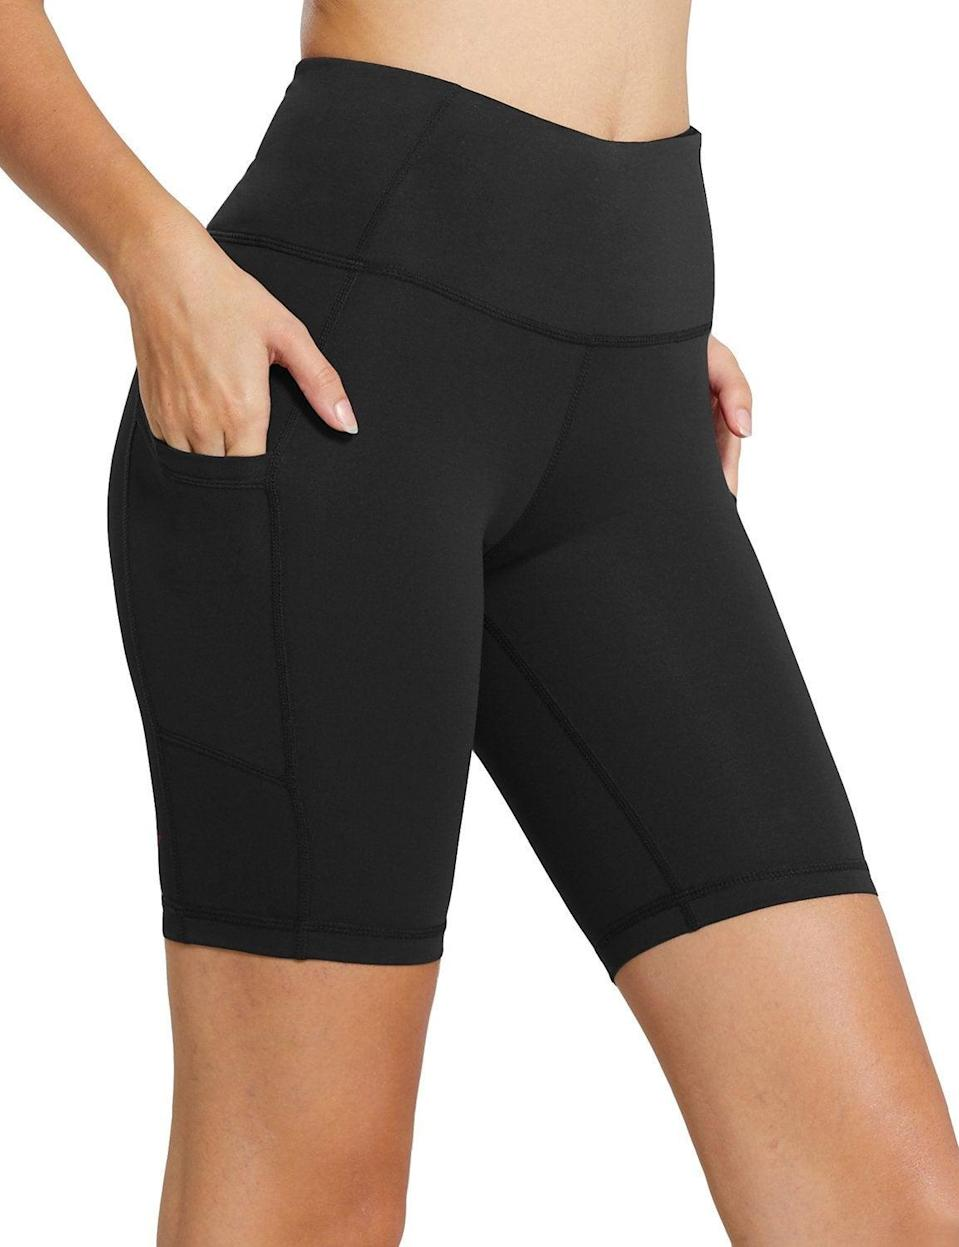 """<h2>33% Off Baleaf High Waist Biker Shorts<br></h2><br>Another viral activewear buy: these high-waisted pocket shorts that have been longtime best-sellers on Amazon, racking up over 50,000 reviews over the years. They're constantly rotating through the site's best-sellers landing page, and they were already a steal at $20 — you'd be silly not to buy them for just $13.99 today.<br><br><em>Shop Baleaf on <strong>Amazon</strong> </em><br><br><strong>Baleaf</strong> High Waist Biker Shorts, $, available at <a href=""""https://amzn.to/2SV9Ys0"""" rel=""""nofollow noopener"""" target=""""_blank"""" data-ylk=""""slk:Amazon"""" class=""""link rapid-noclick-resp"""">Amazon</a>"""